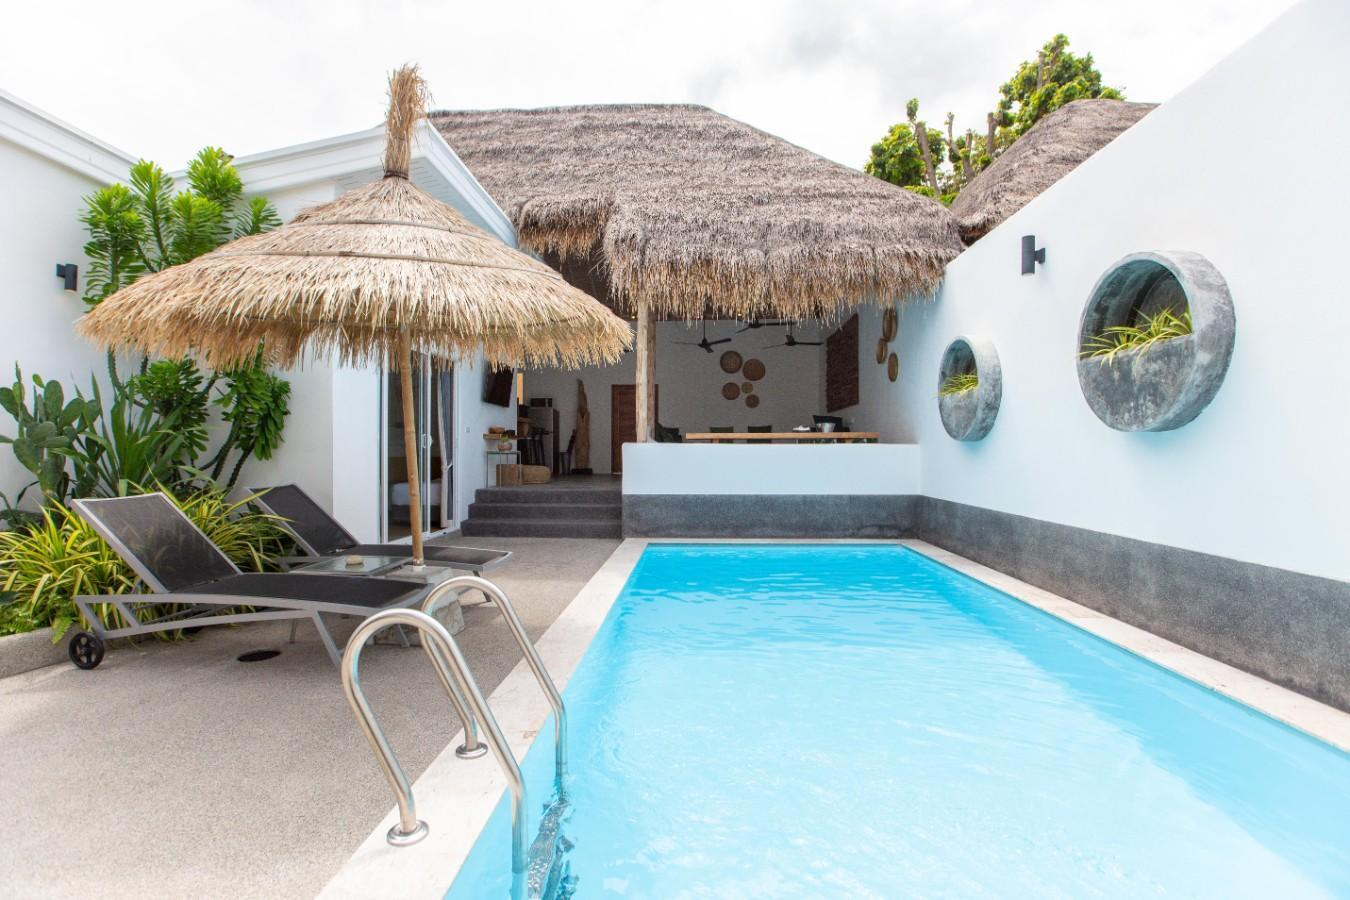 3-Bedroom Pool Villa (3 Bedroom Villa with Pool)